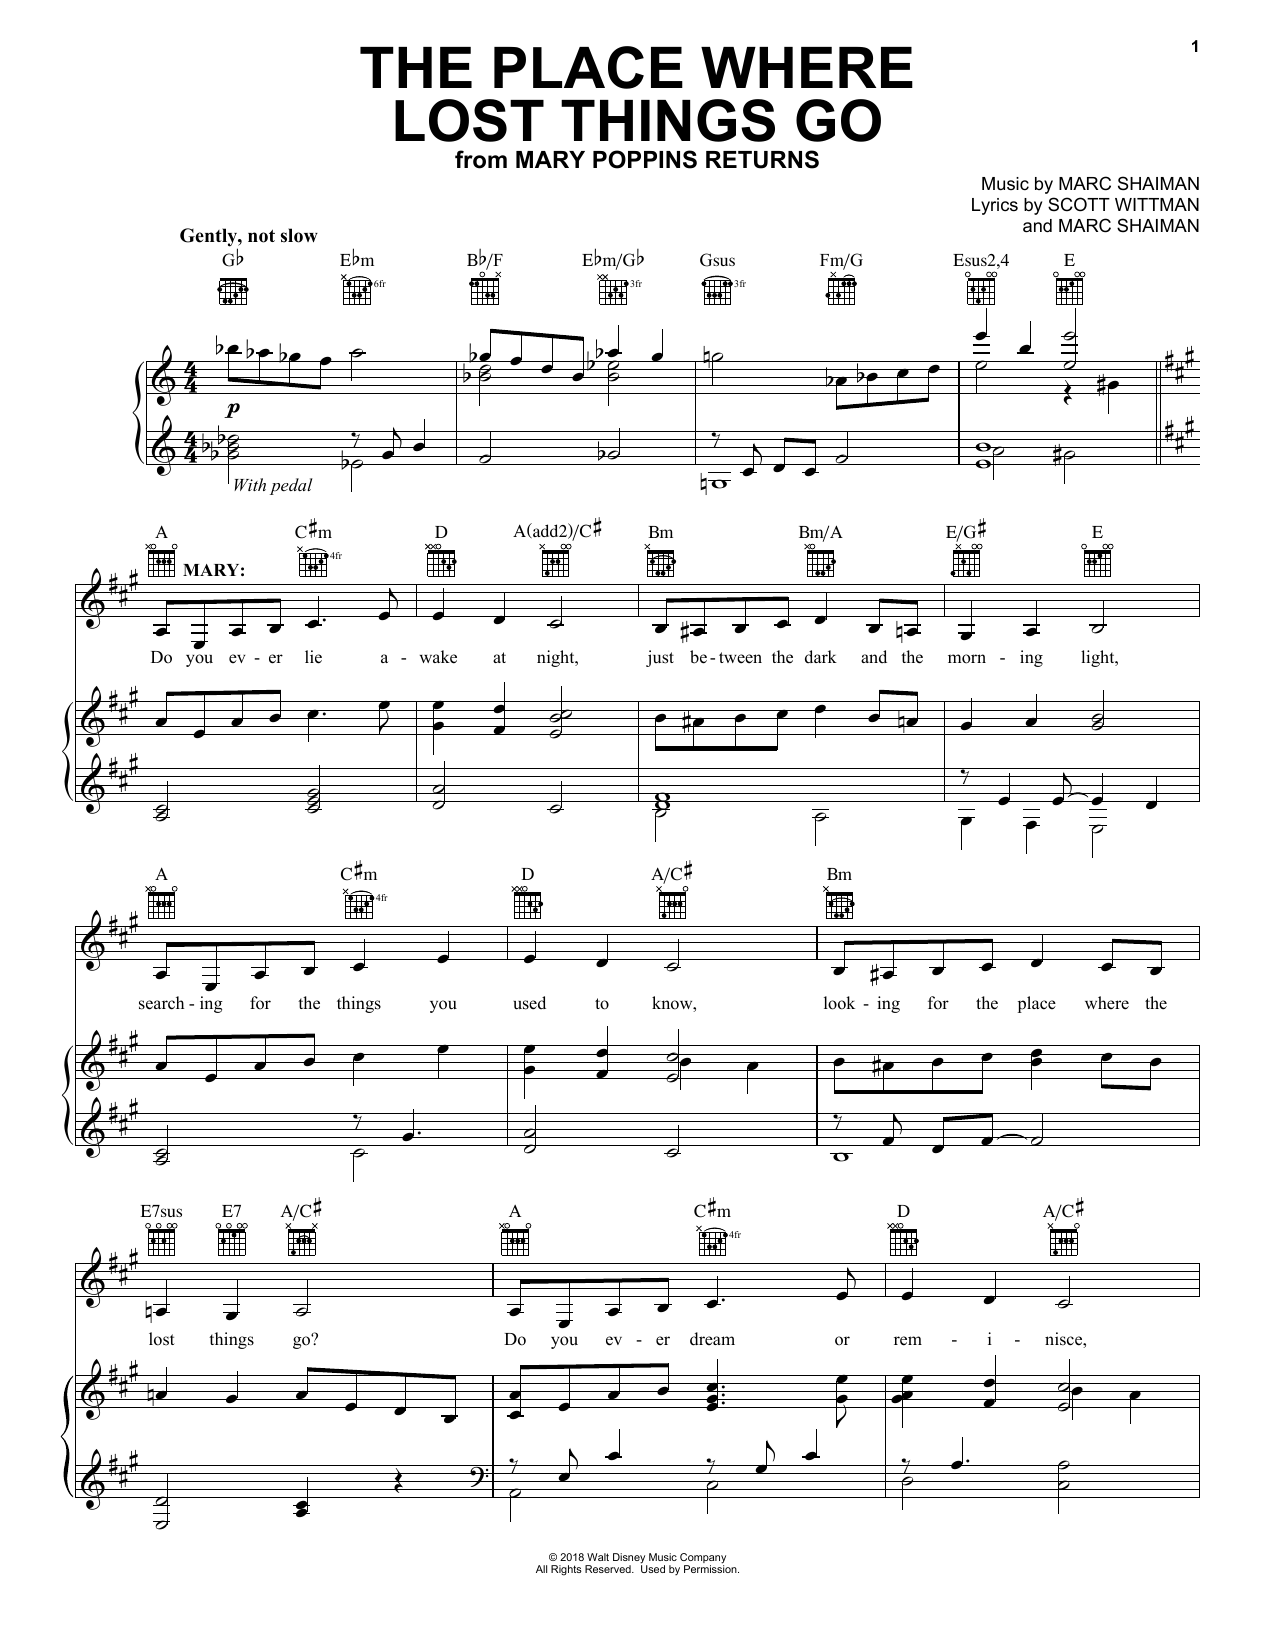 Emily Blunt The Place Where Lost Things Go (from Mary Poppins Returns) sheet music notes and chords